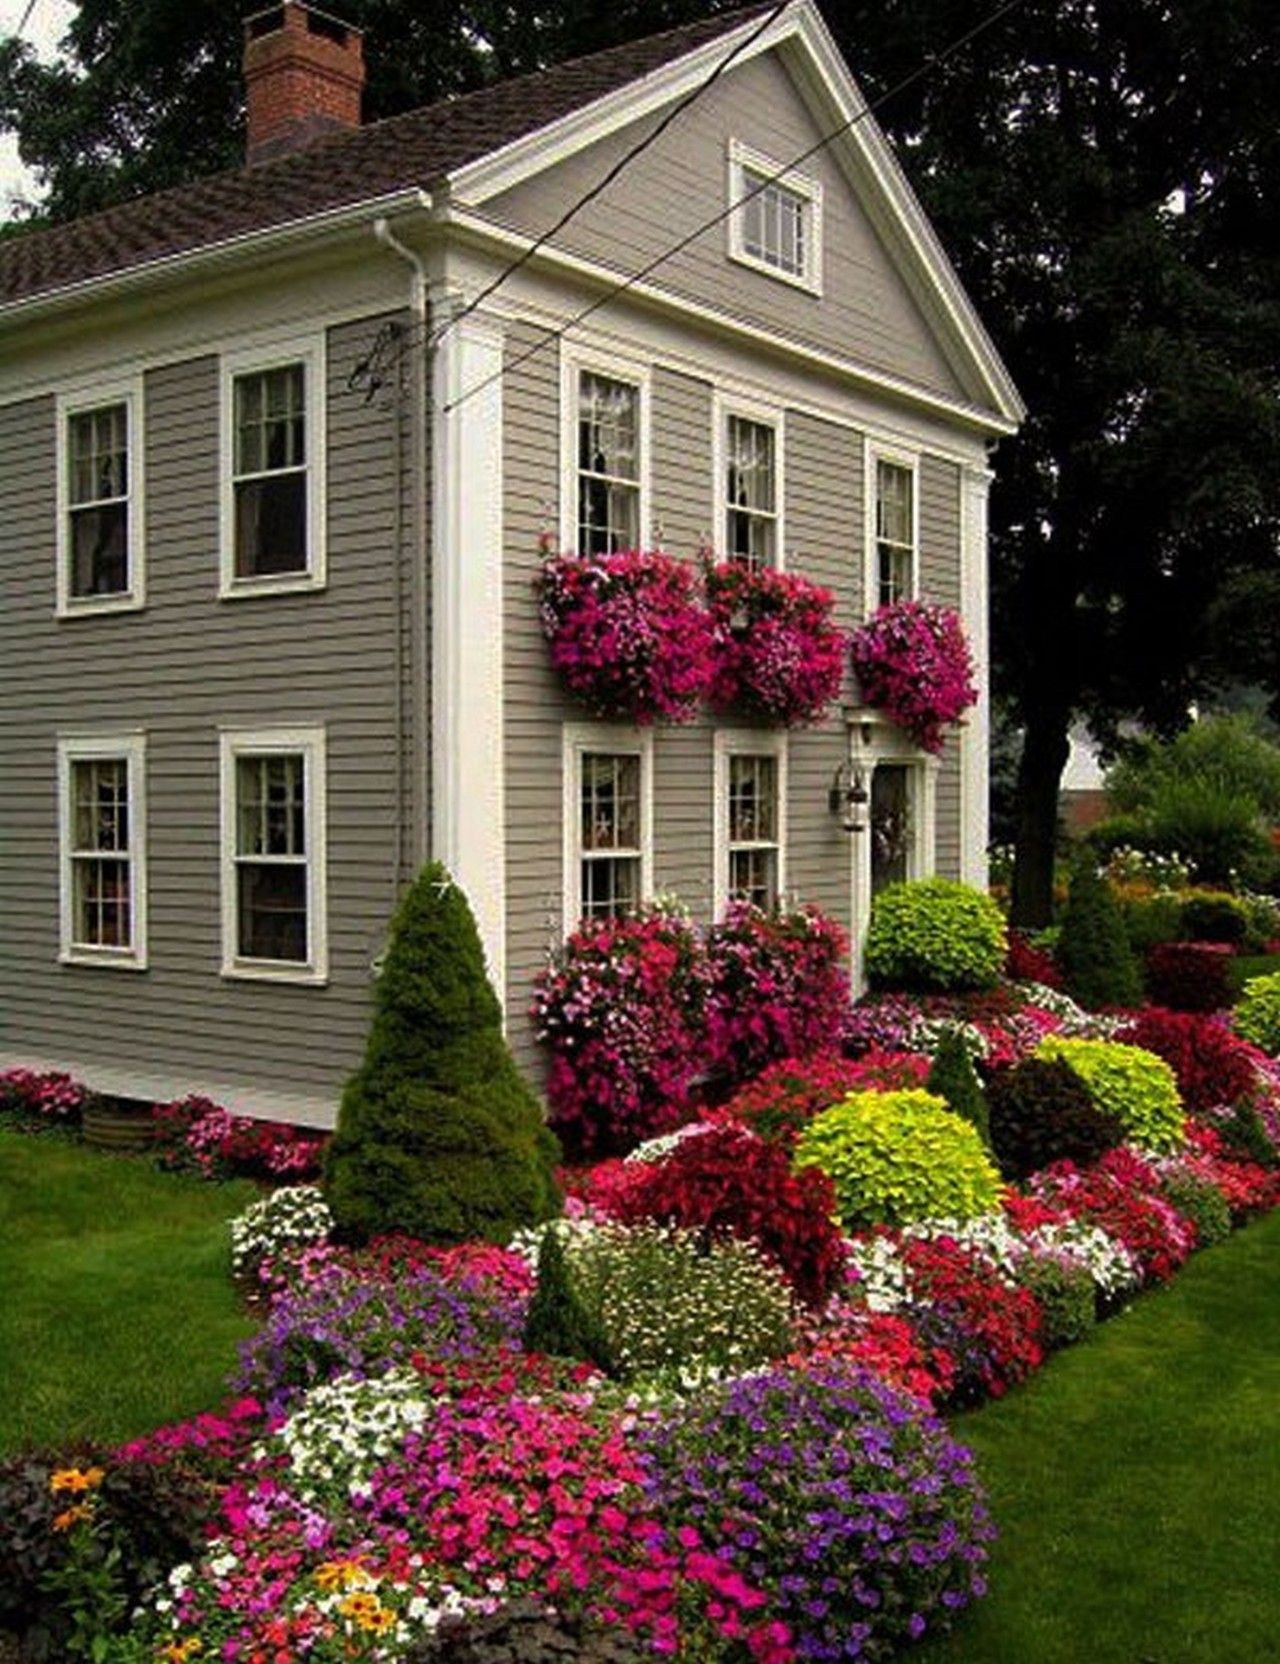 Awesome landscaping ideas for front yards composition for Front yard flower bed ideas